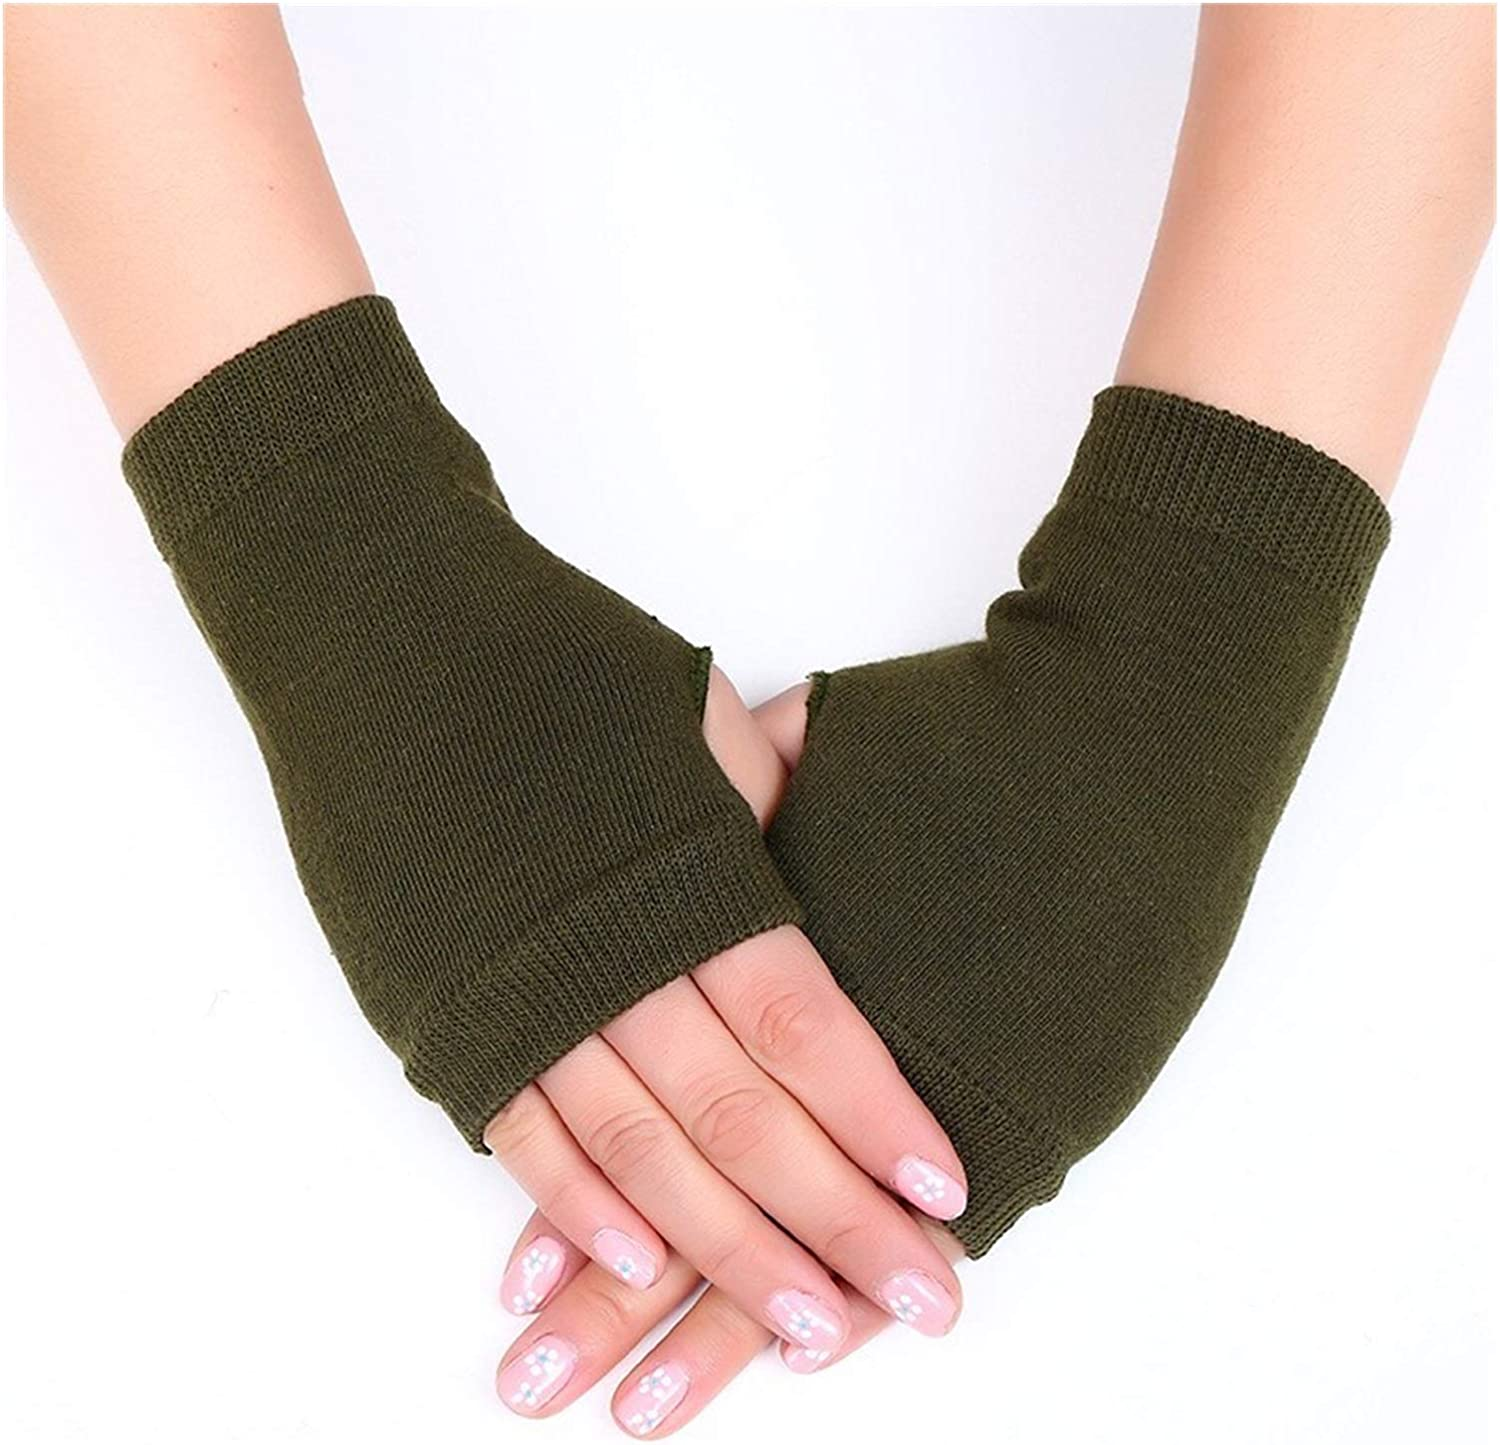 Jgzwlkj Gloves Winter Knitted Arm Fingerless Warm Gloves Solid Color Fingerless Soft Gloves for Women Girl Keep Hands Warm (Color : Army Green, Gloves Size : Free Size)